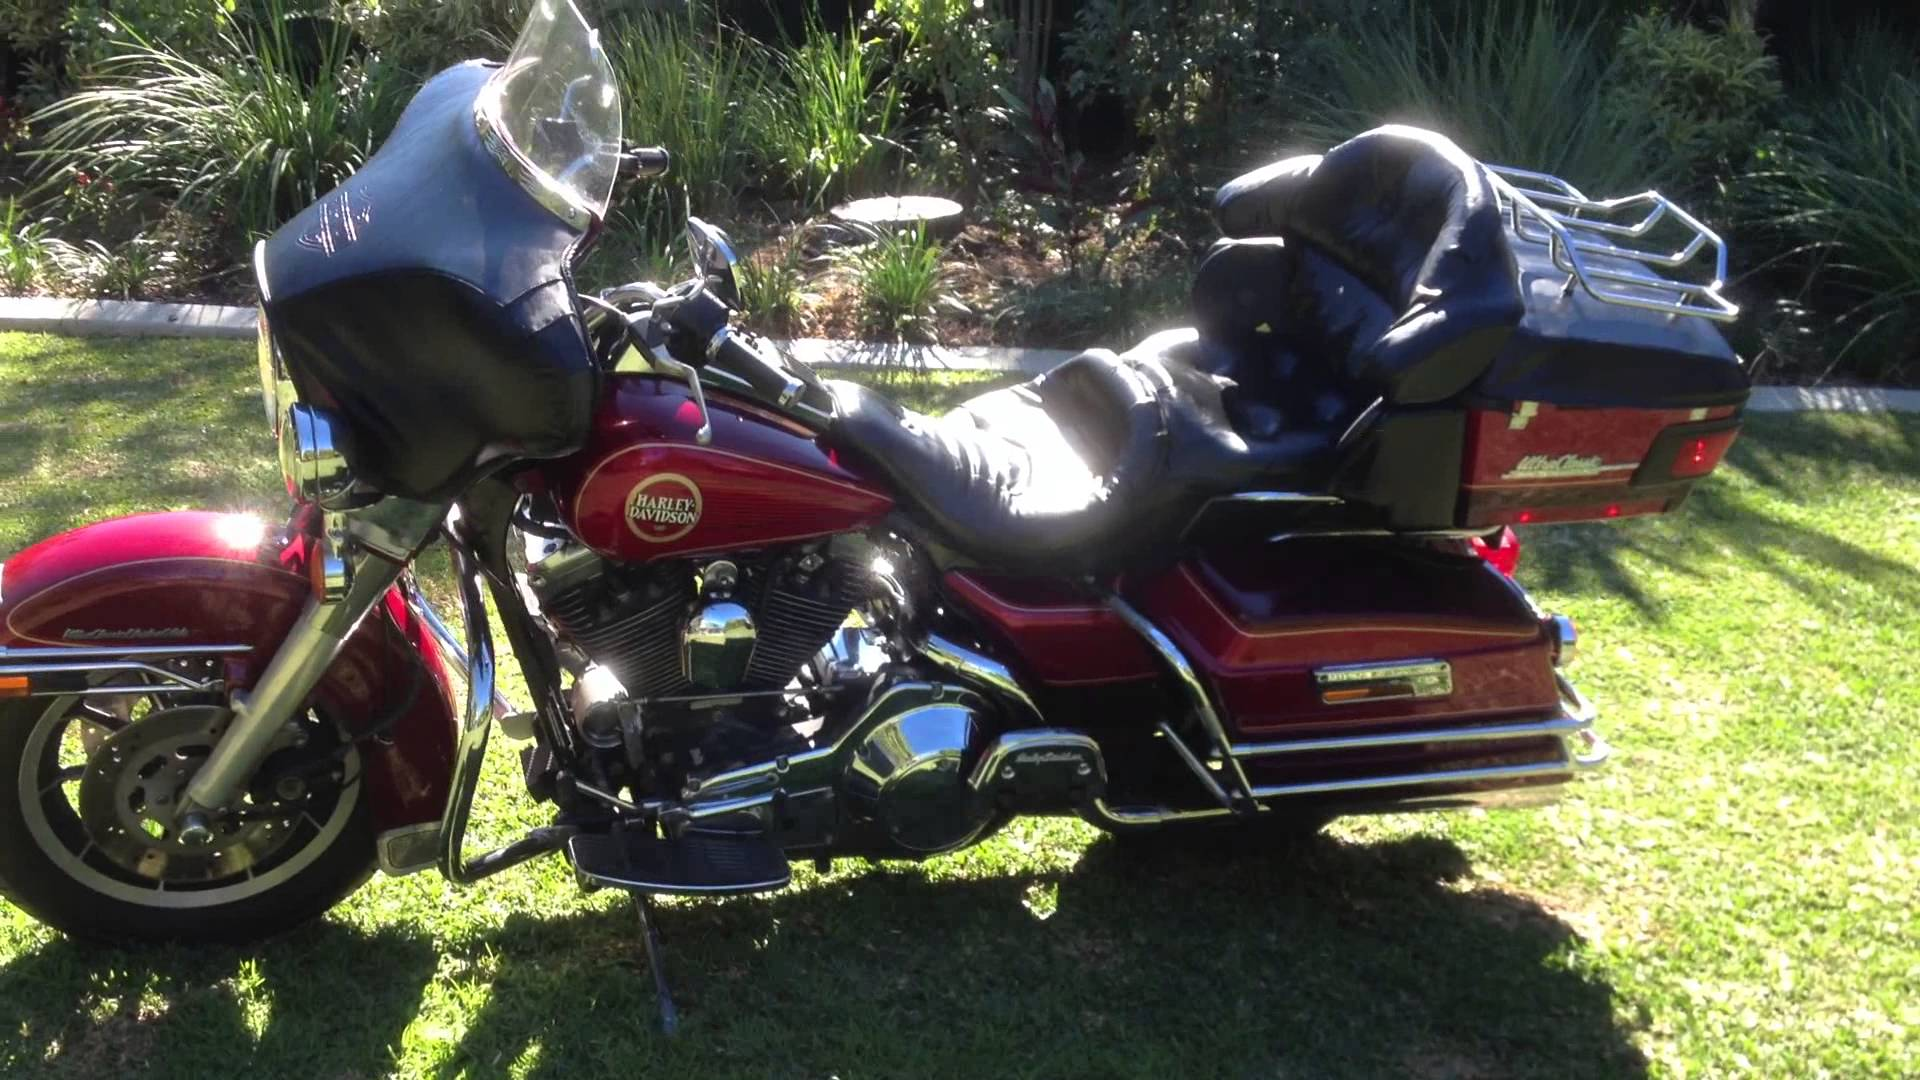 Harley-Davidson FLHTC 1340 Electra Glide Classic 1994 pics #16376